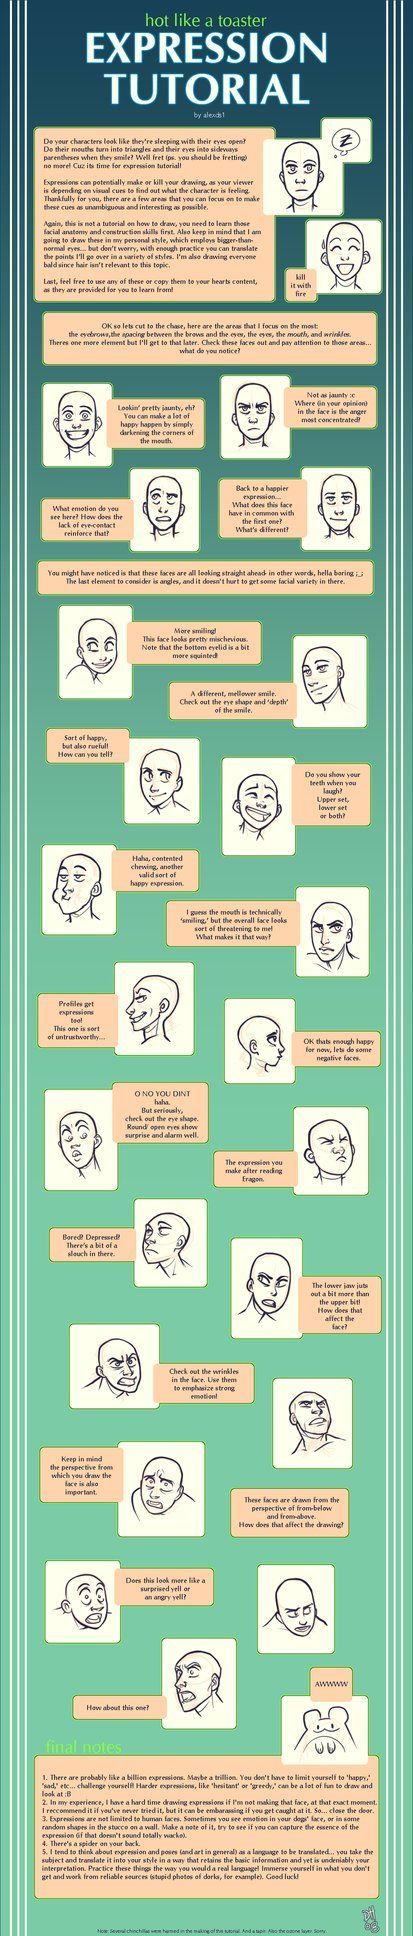 Drawing faces and facial expressions are of utmost importance, so here is a fairly simple expression tutorial in a visual format with text.